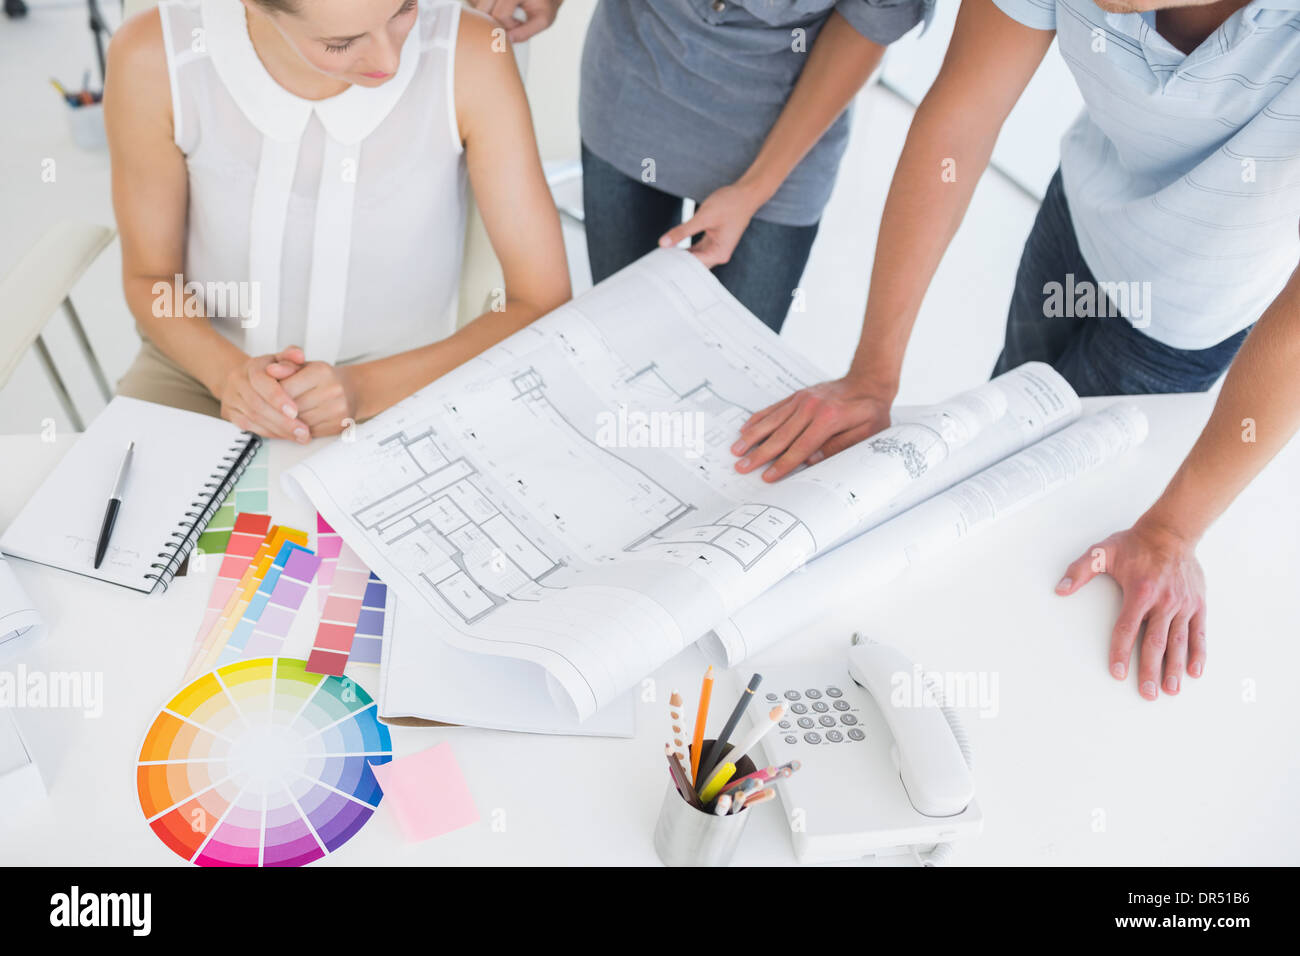 Mid section of artists working on designs - Stock Image